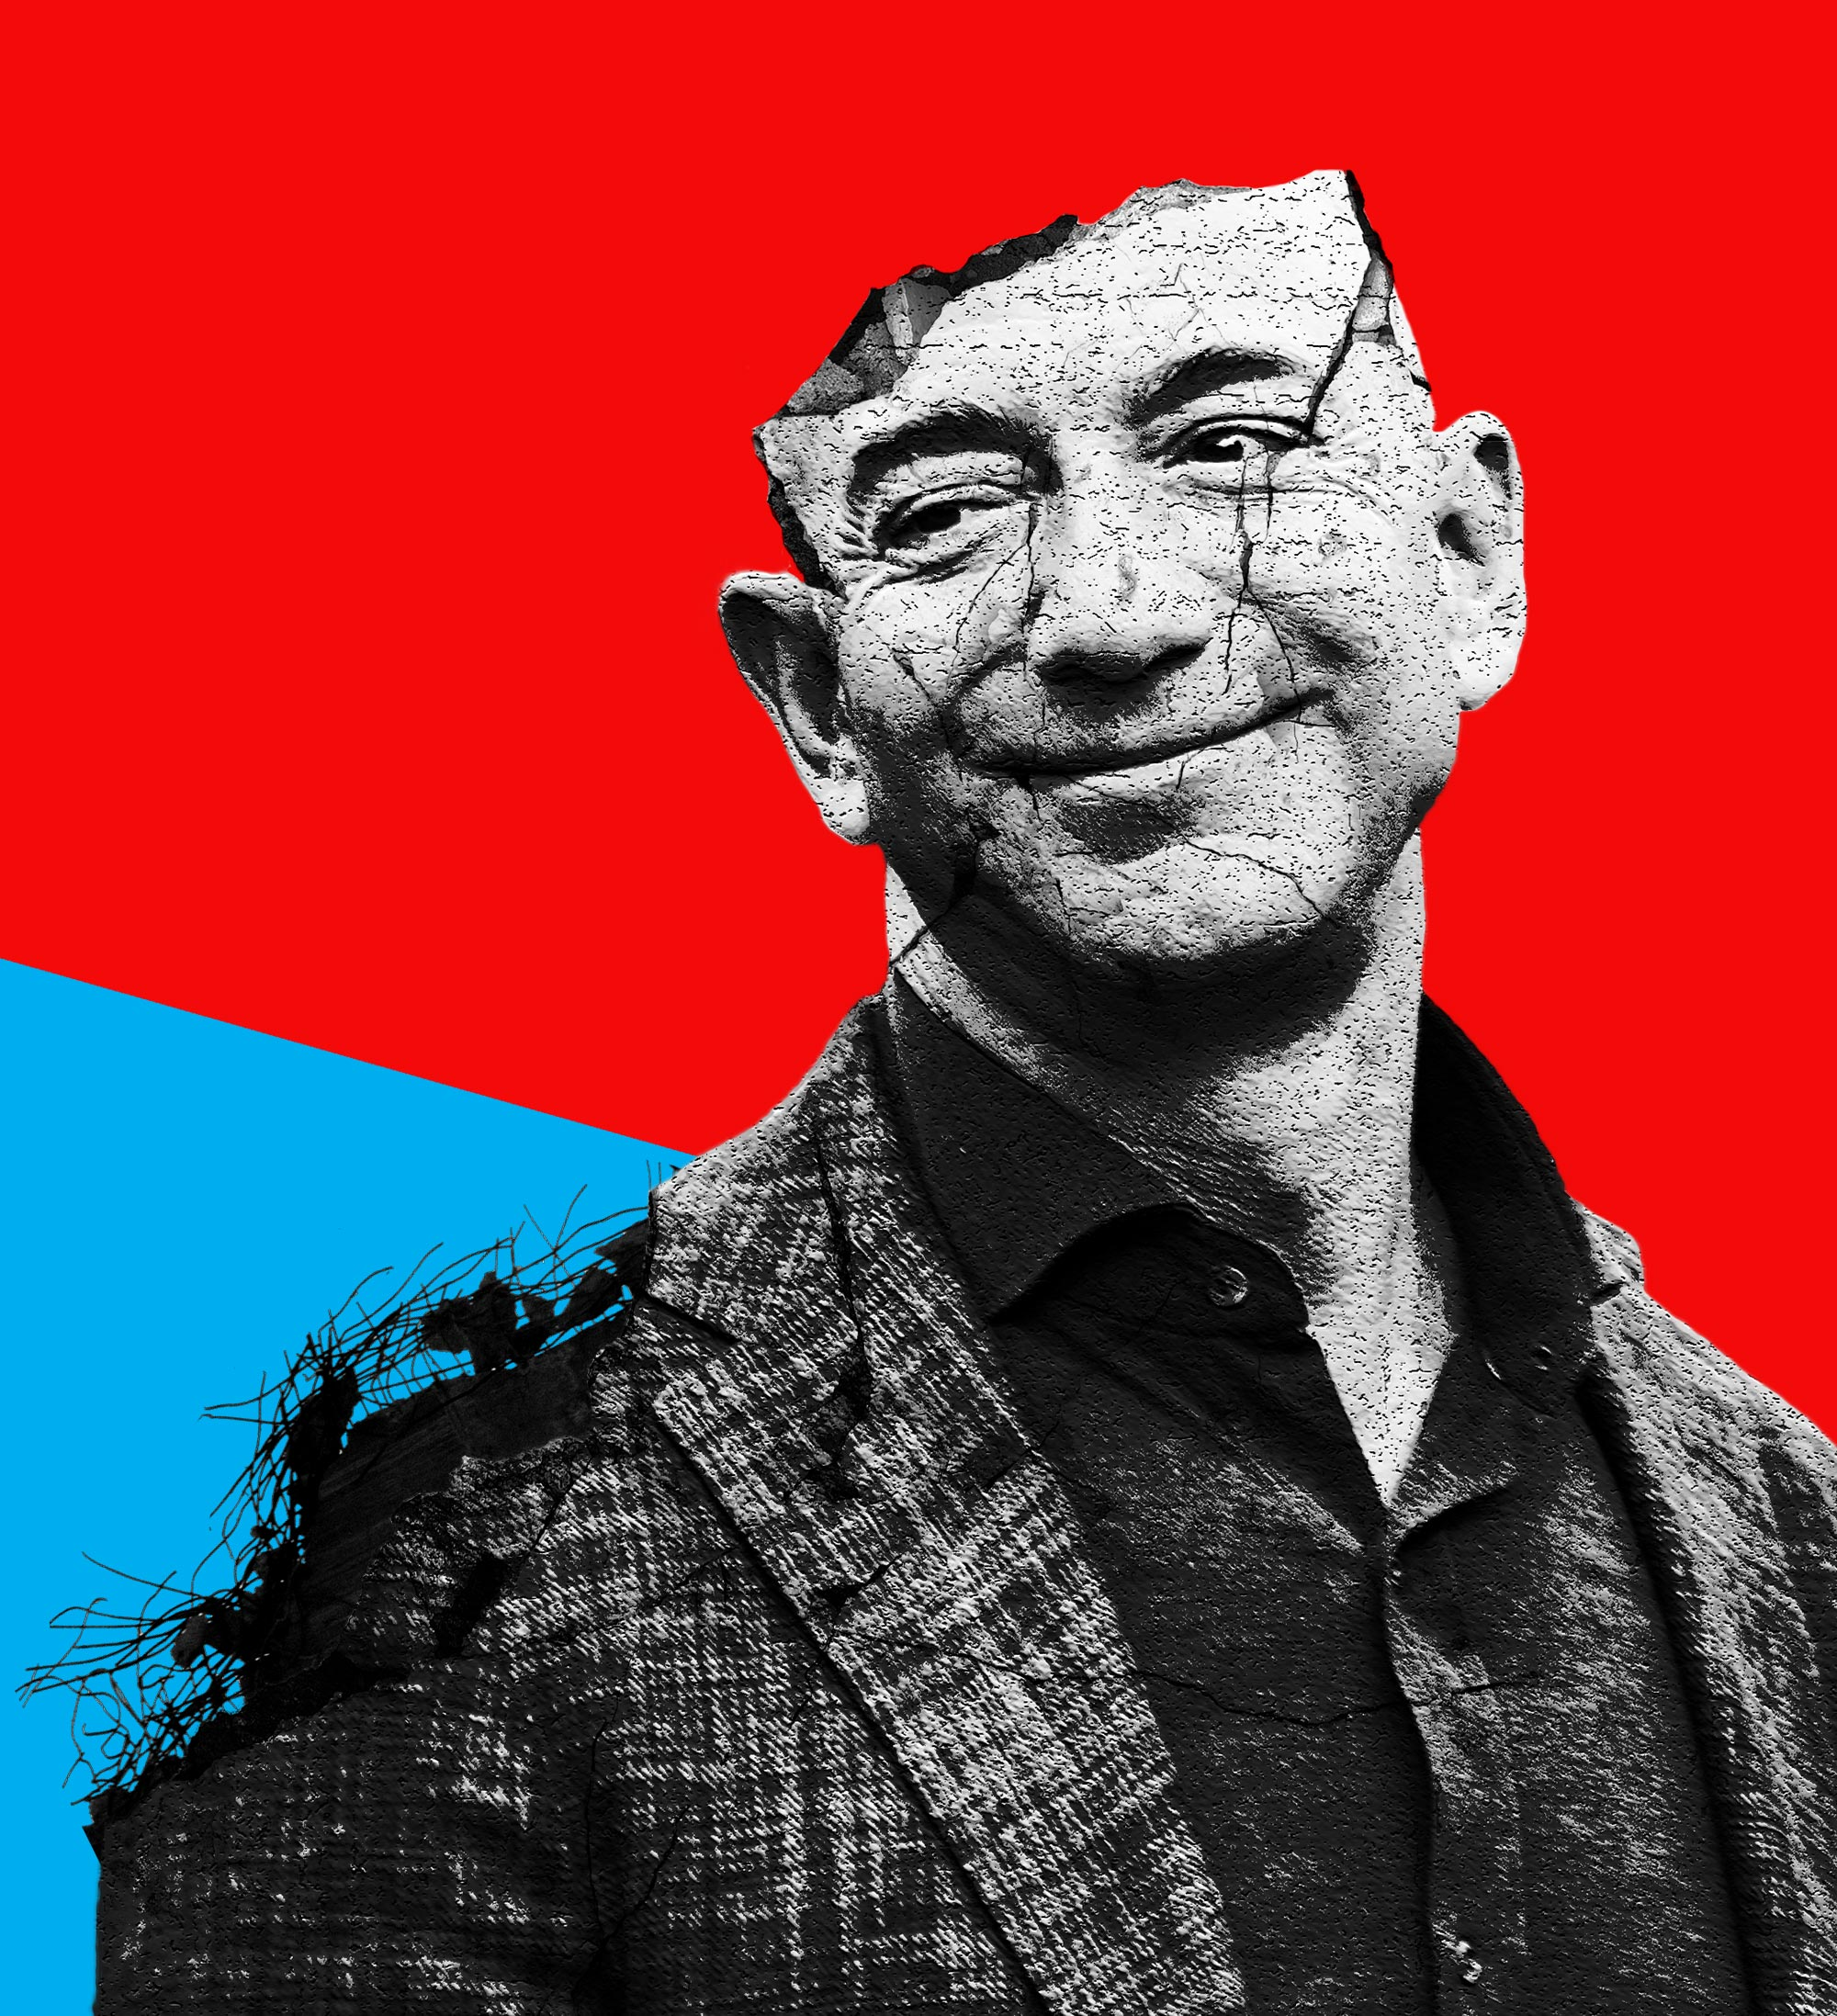 Illustration of Amazon's Jeff Bezos being demolished like a building representing the idea of breaking up big tech companies.